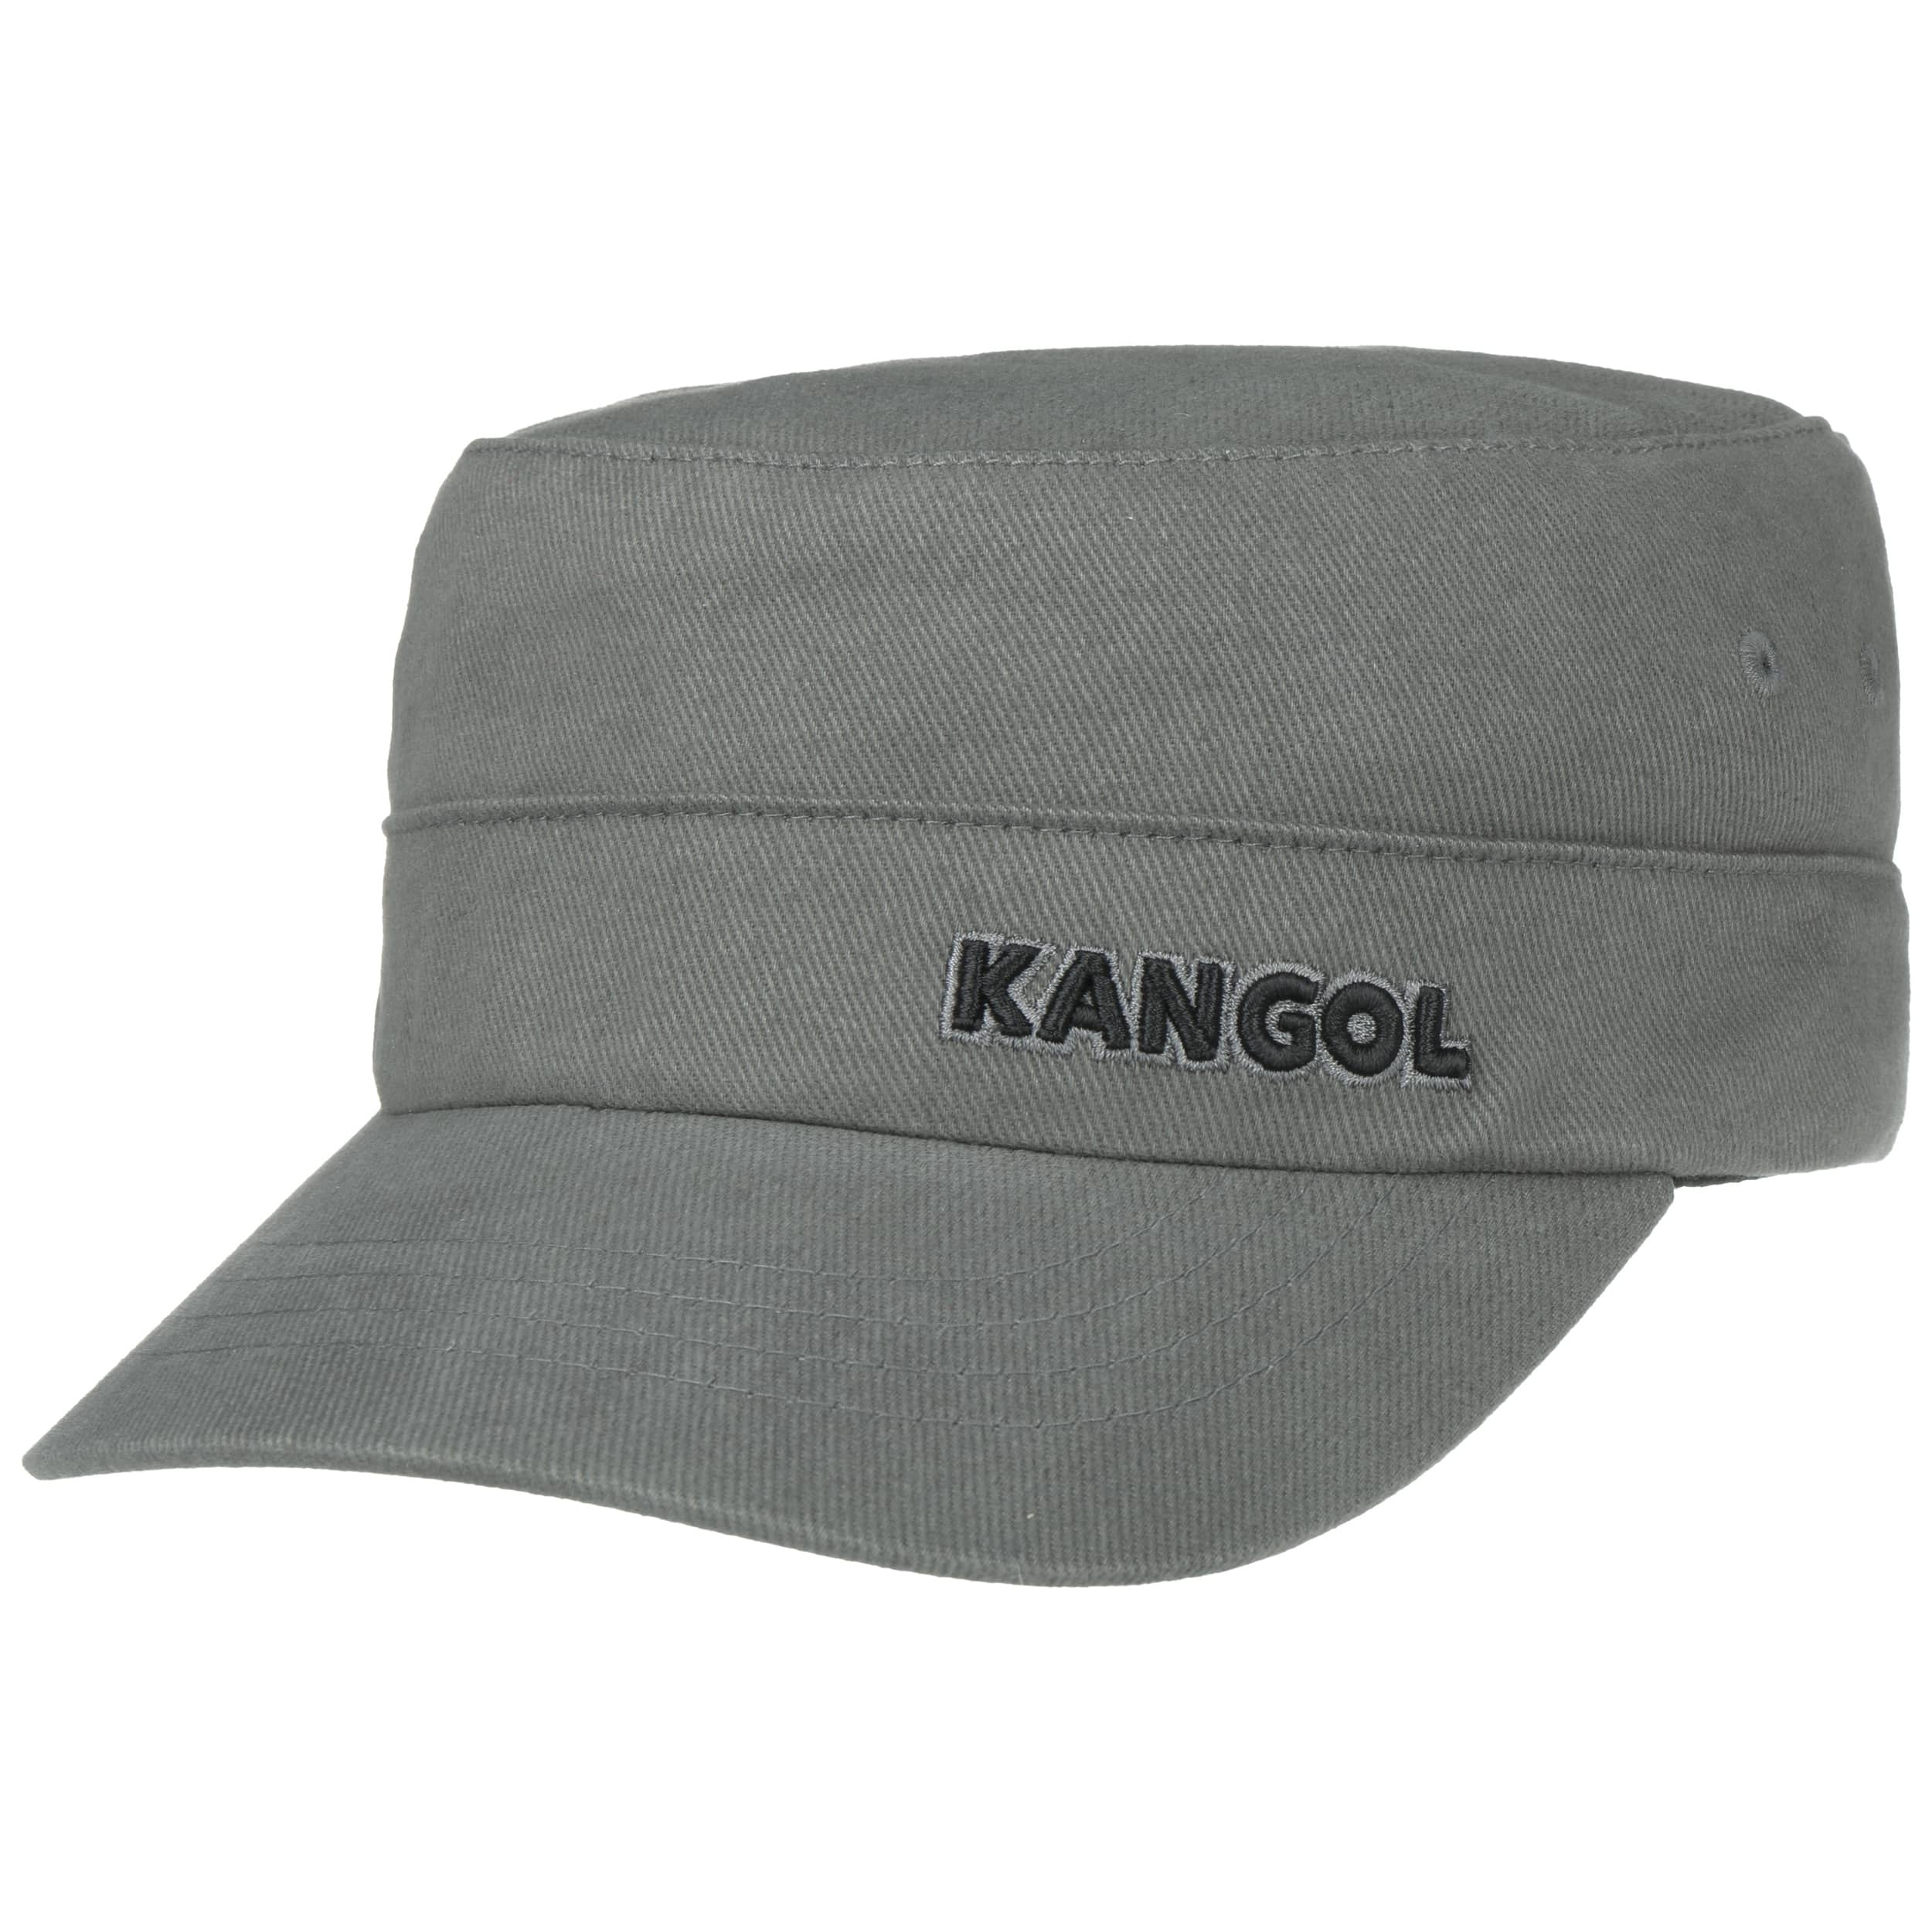 aeaf5aec4 Flexfit Urban Army Cap by Kangol